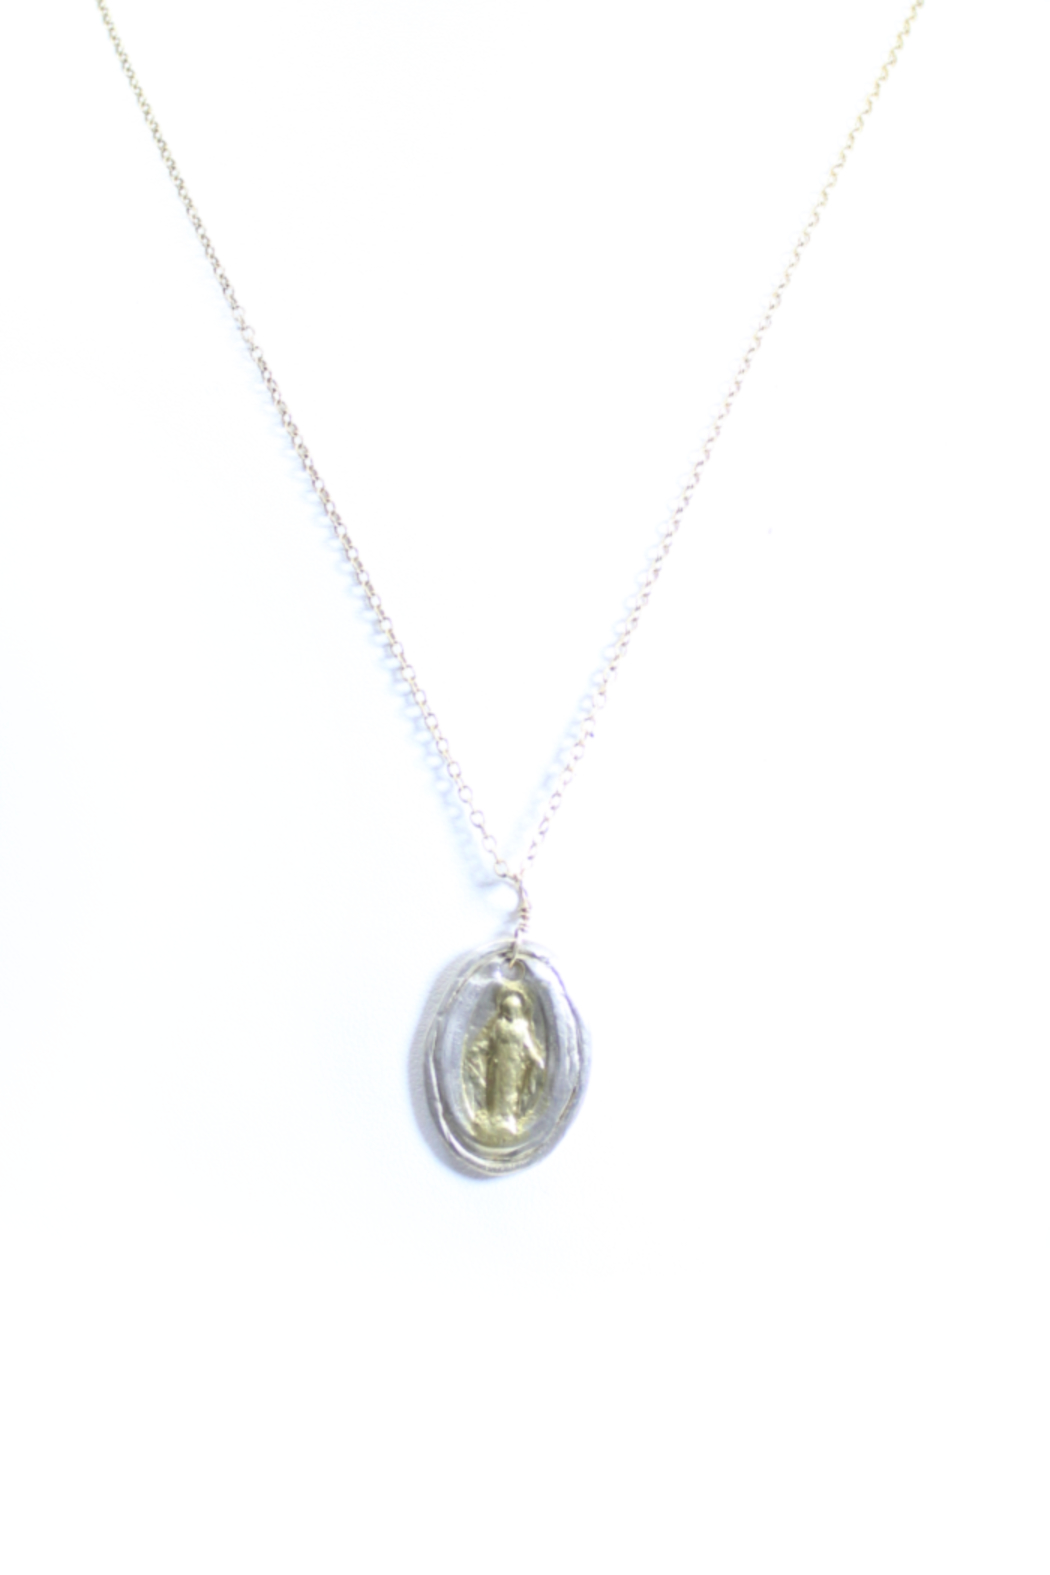 The Birds Nest SMALL MIRACULOUS MEDAL NECKLACE - 8.5 INCH CHAIN - Main Image